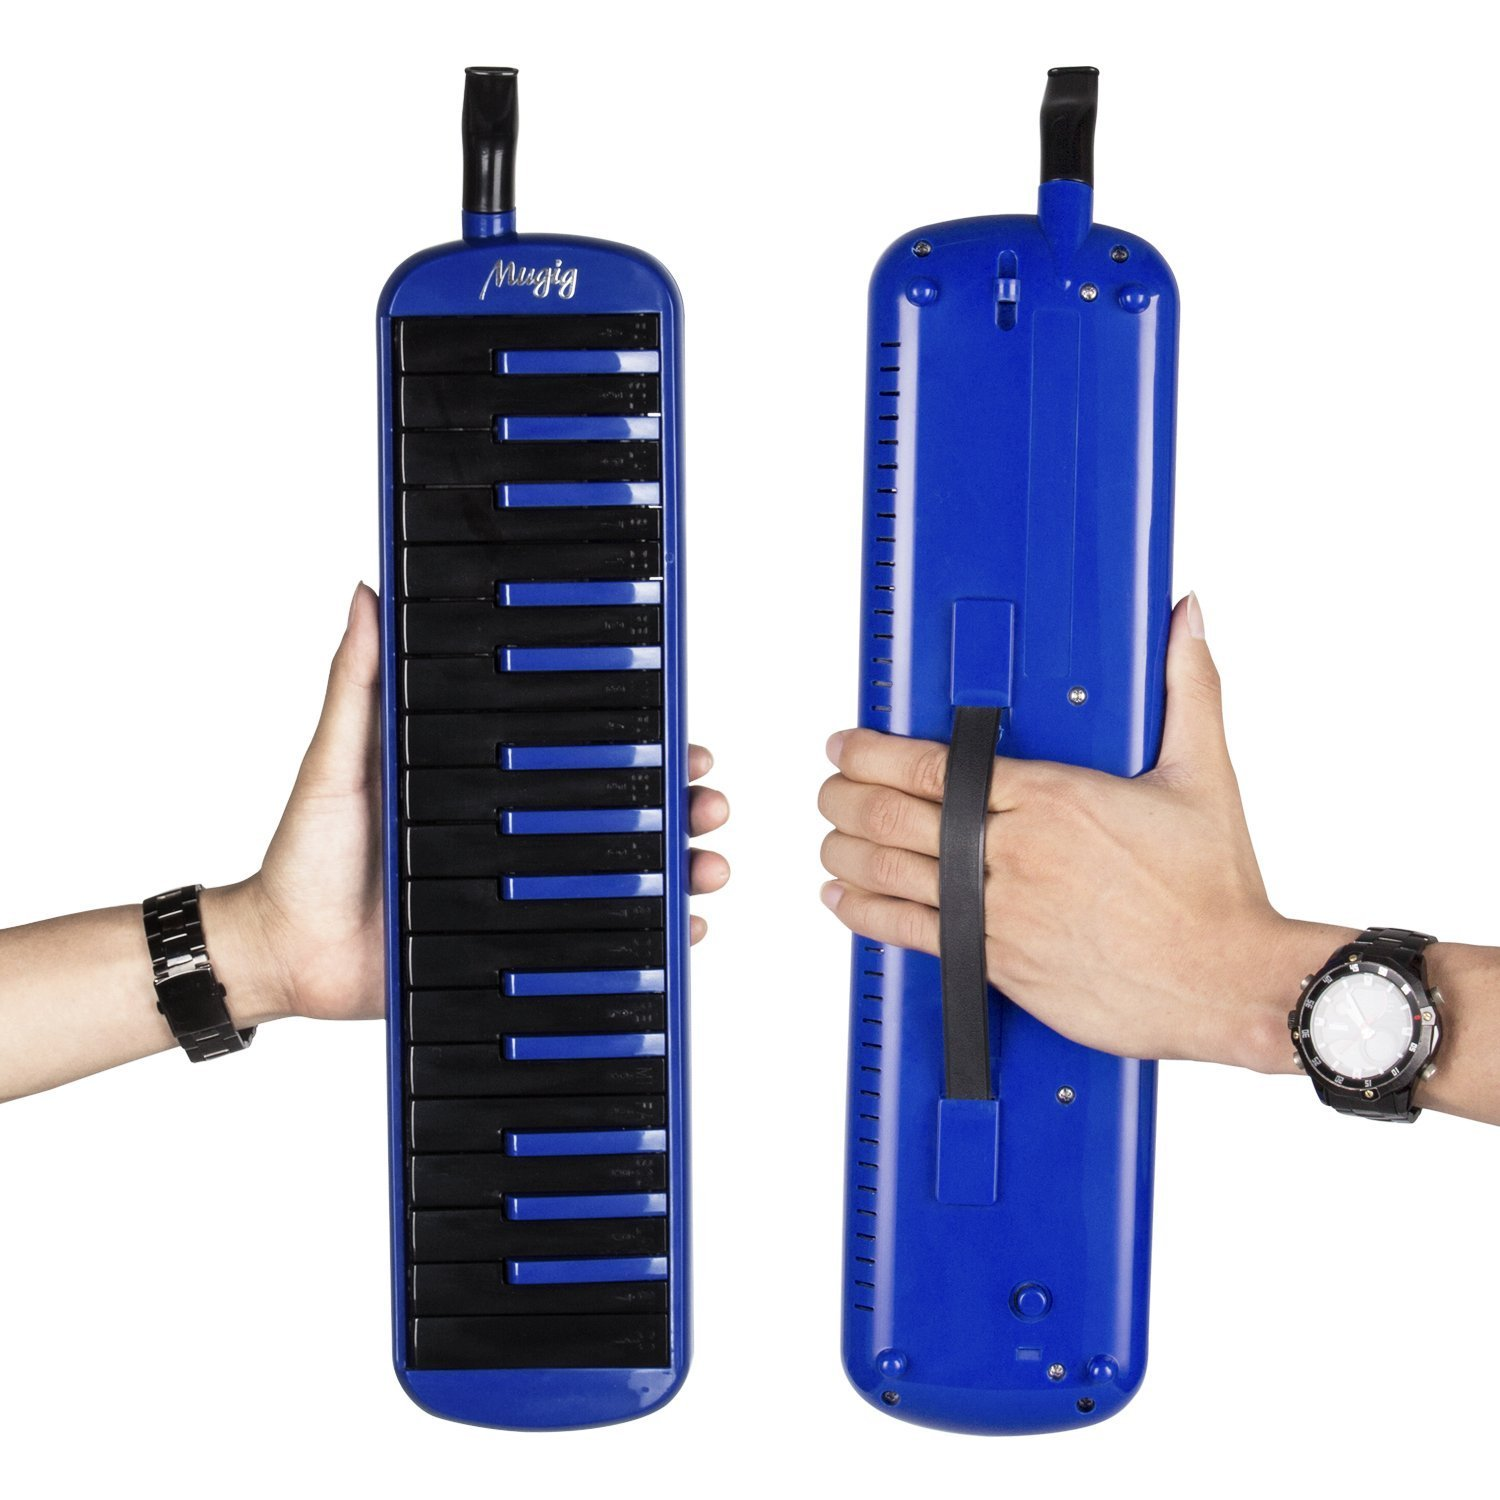 Melodica 32 Key Piano Style Melodica, for Teaching and Playing, with Carrying Case, Music Gift for Kids(Blue)